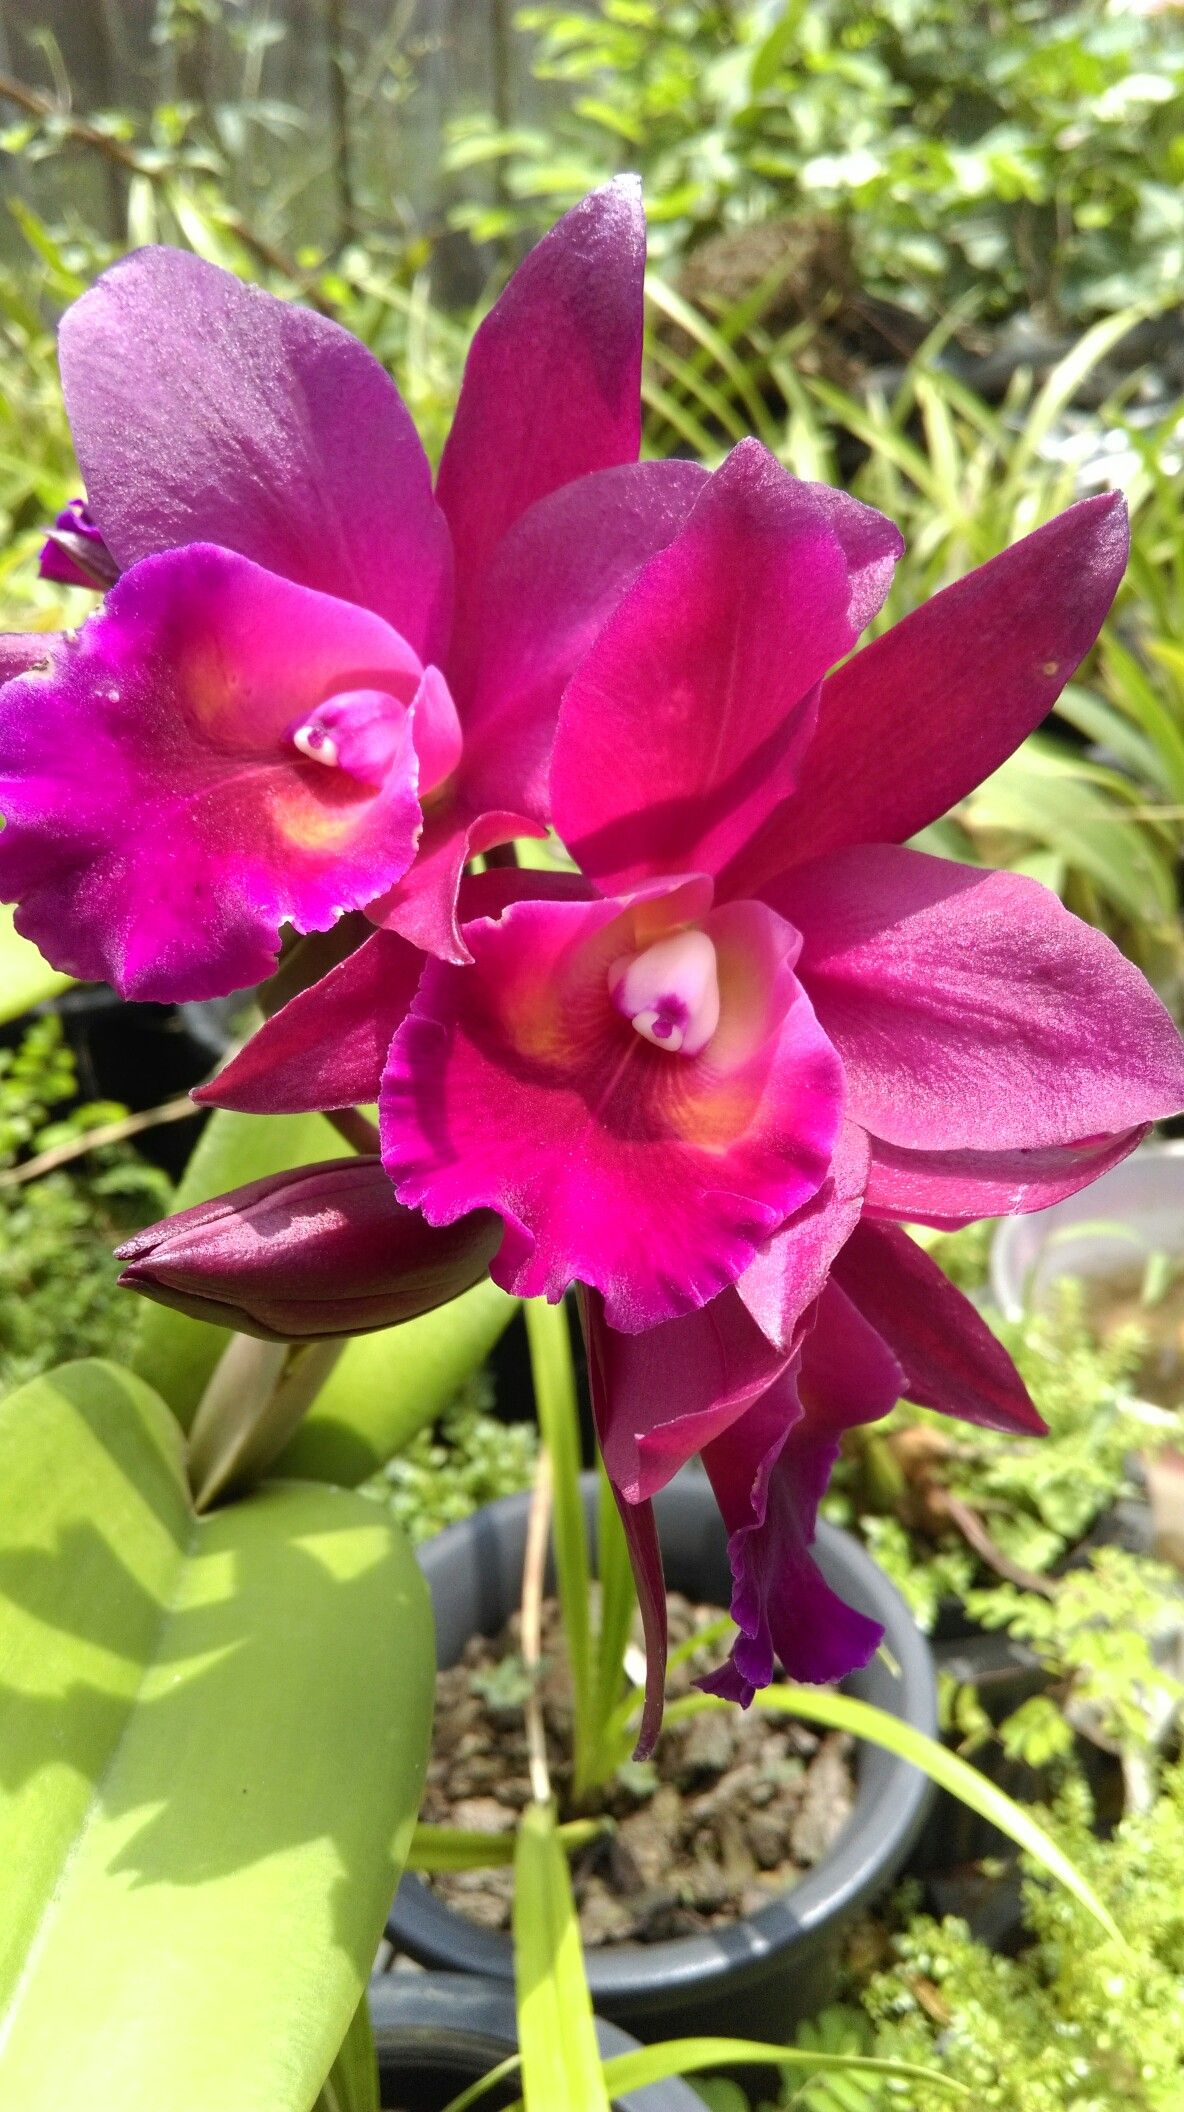 Pin by david ely on orchids pinterest orchid flowers and exotic flowers beautiful flowers unusual plants angel gay wedding orchards calla lilies cactus izmirmasajfo